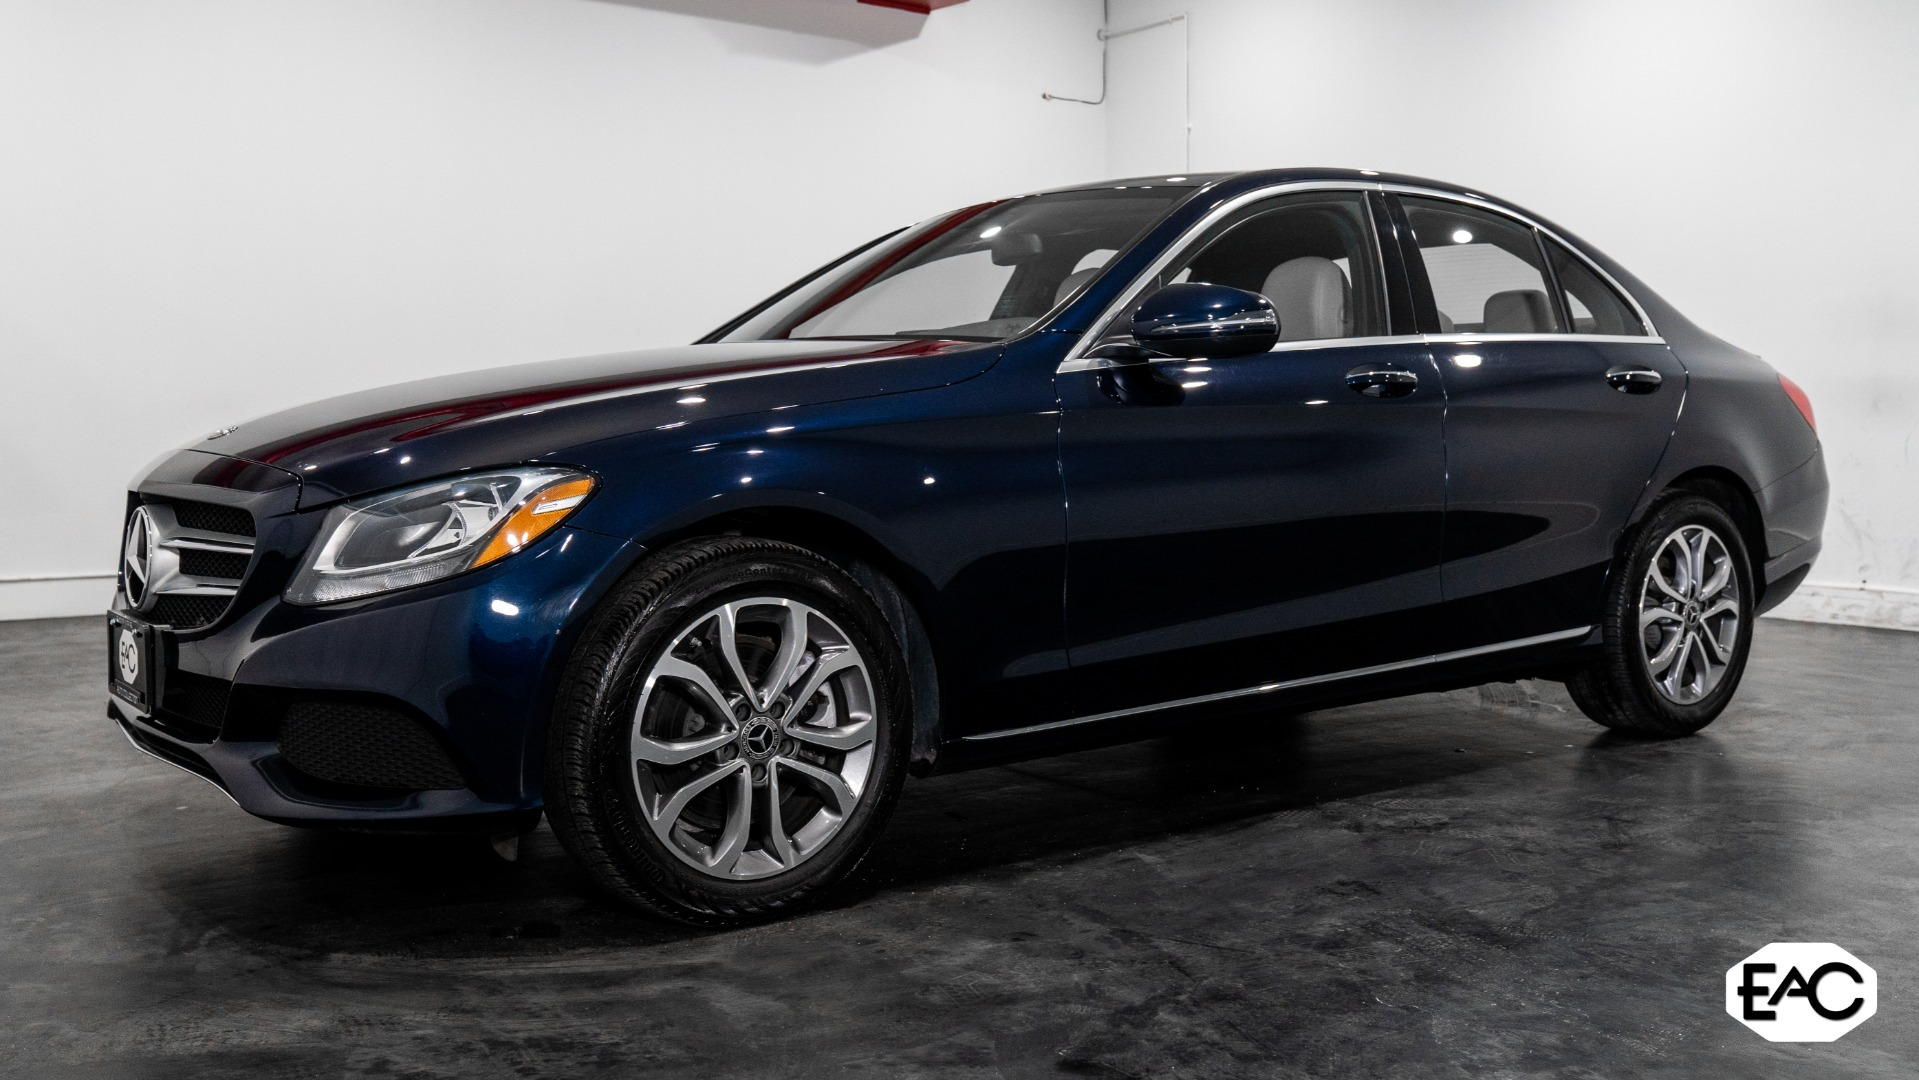 Used 2018 Mercedes-Benz C-Class C 300 4MATIC for sale $26,990 at Empire Auto Collection in Warren MI 48091 1